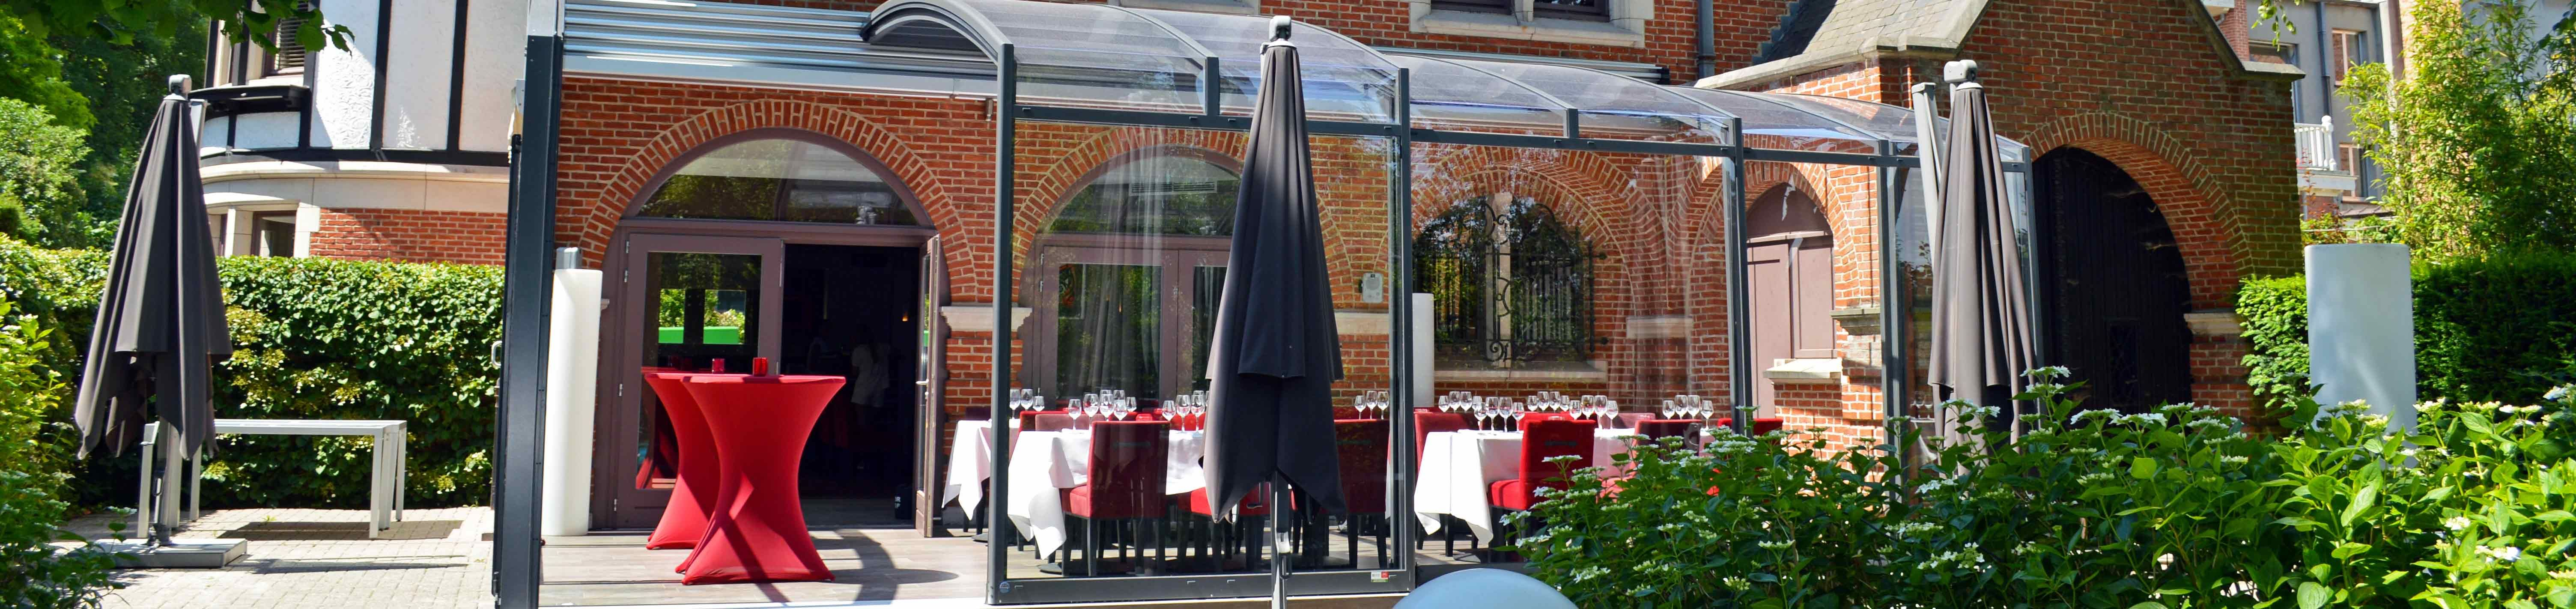 Horeca enclosure system Corso Premium retractable patio